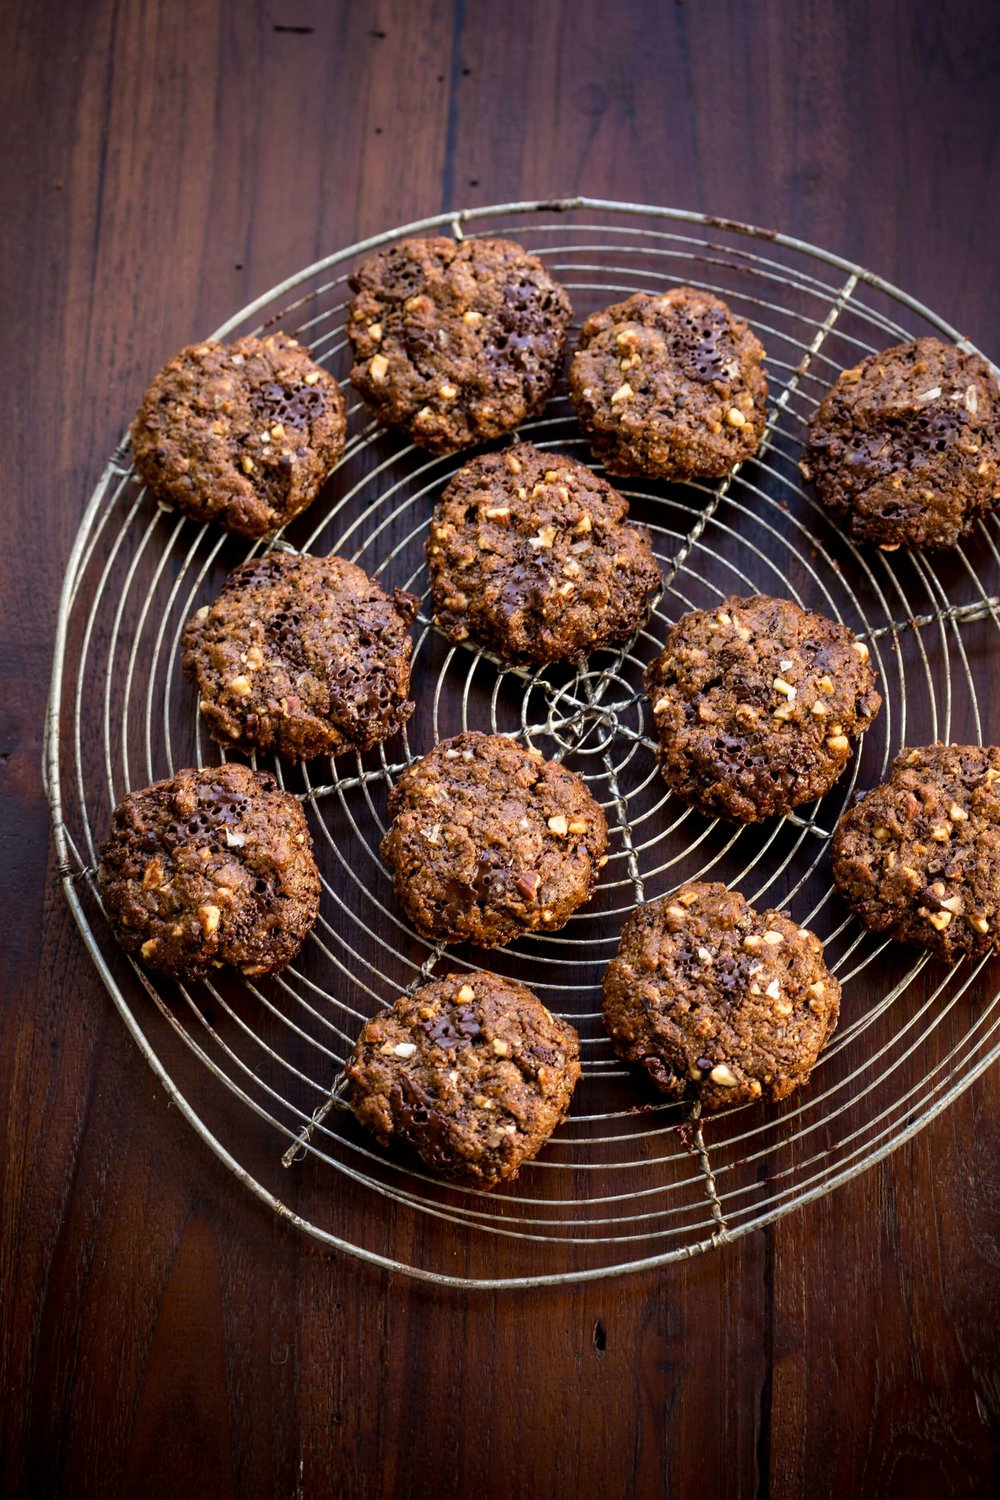 Lola's Favorite Almond Chocolate Chip Cookies - Rebecca Katz